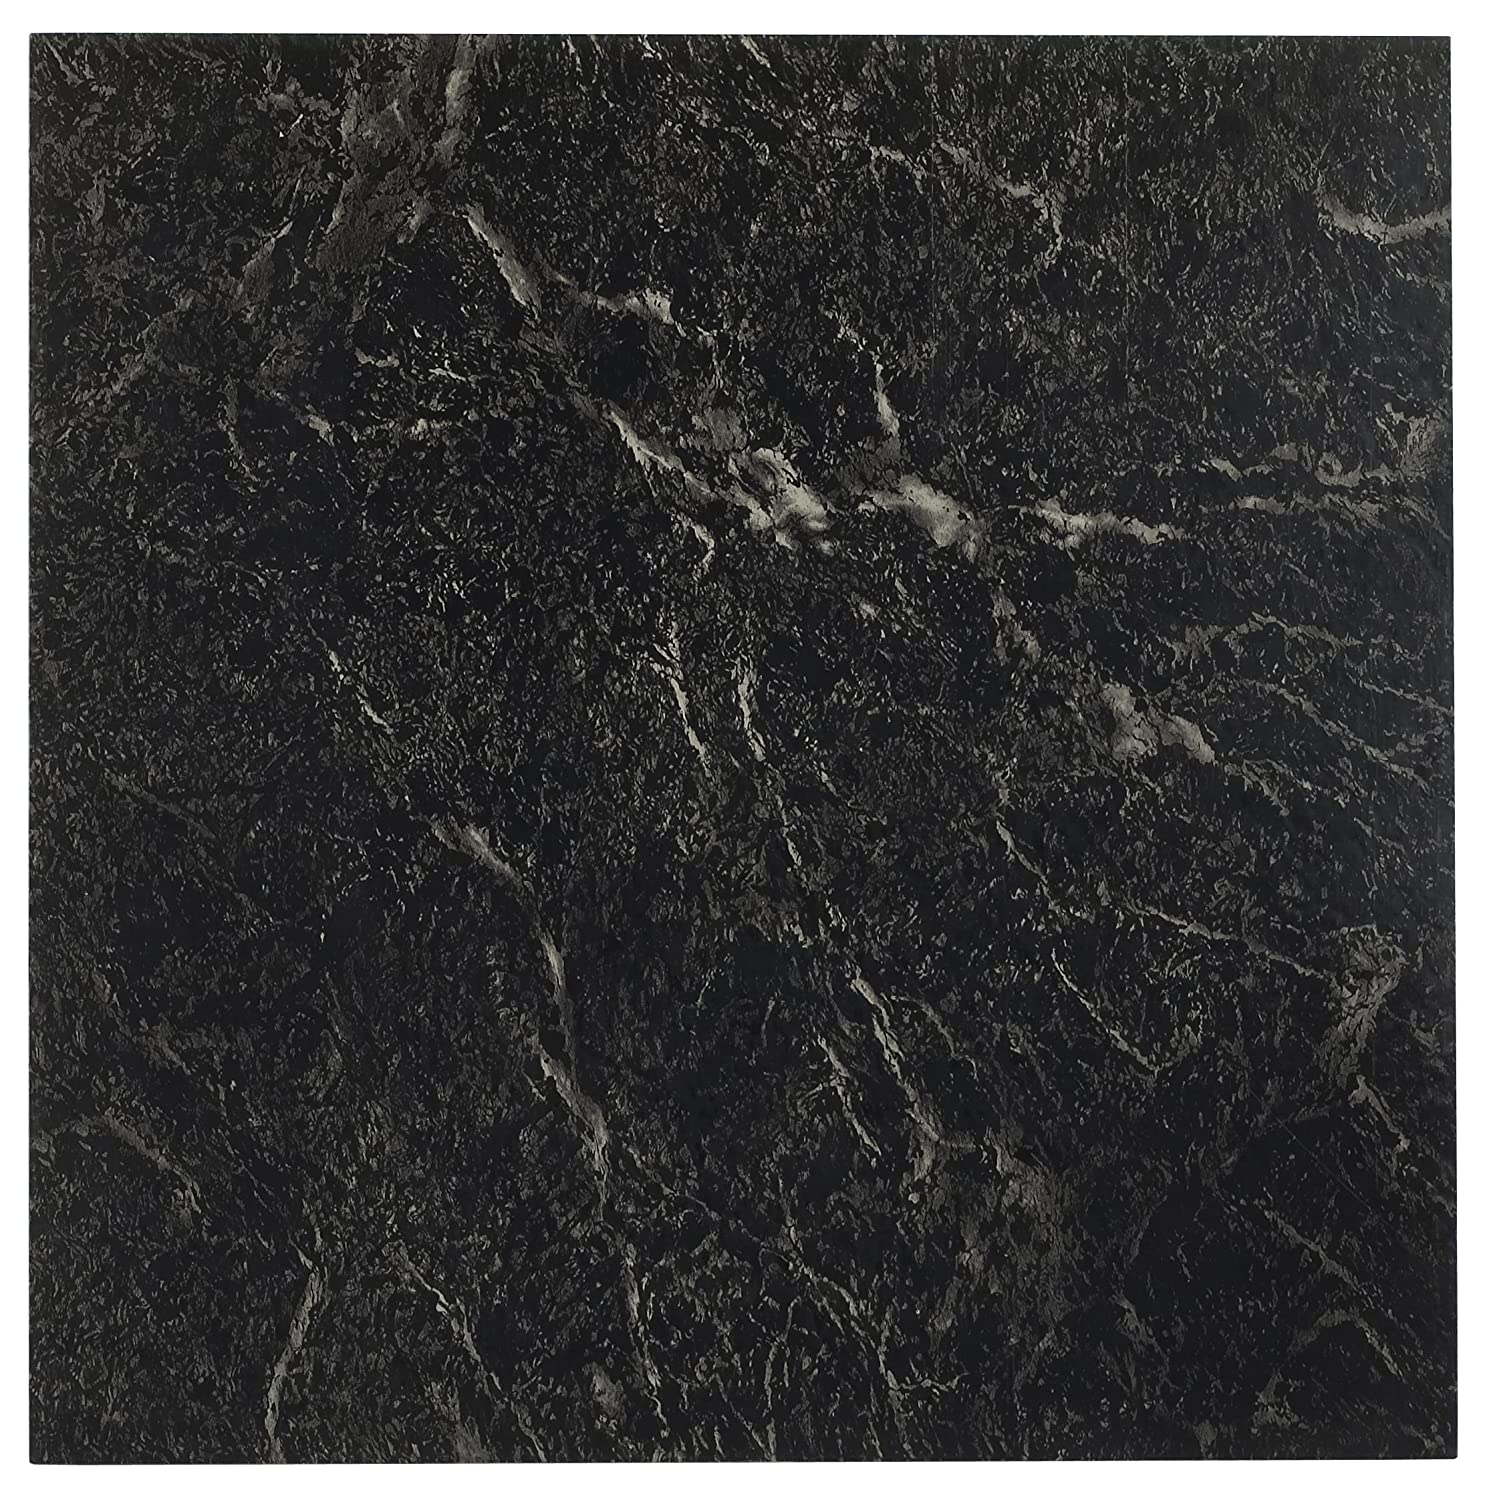 Amazon achim home furnishings ftvma40920 nexus 12 inch vinyl amazon achim home furnishings ftvma40920 nexus 12 inch vinyl tile marble black with white vein 20 pack home improvement dailygadgetfo Image collections